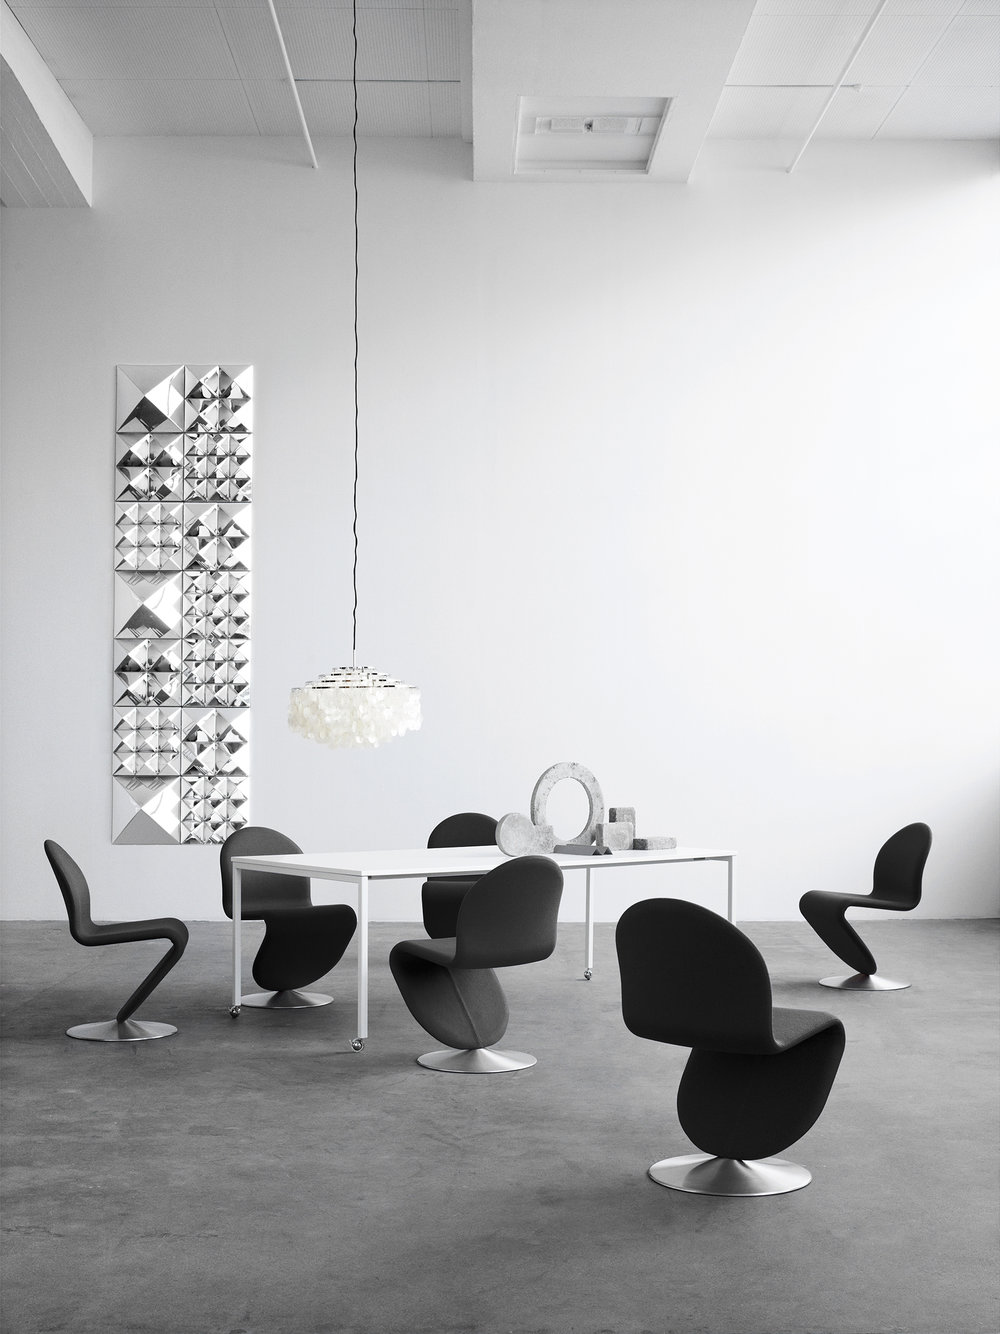 The 'Fun 10dm' pendant light among a host of revolutionary Panton pieces from Verpan.